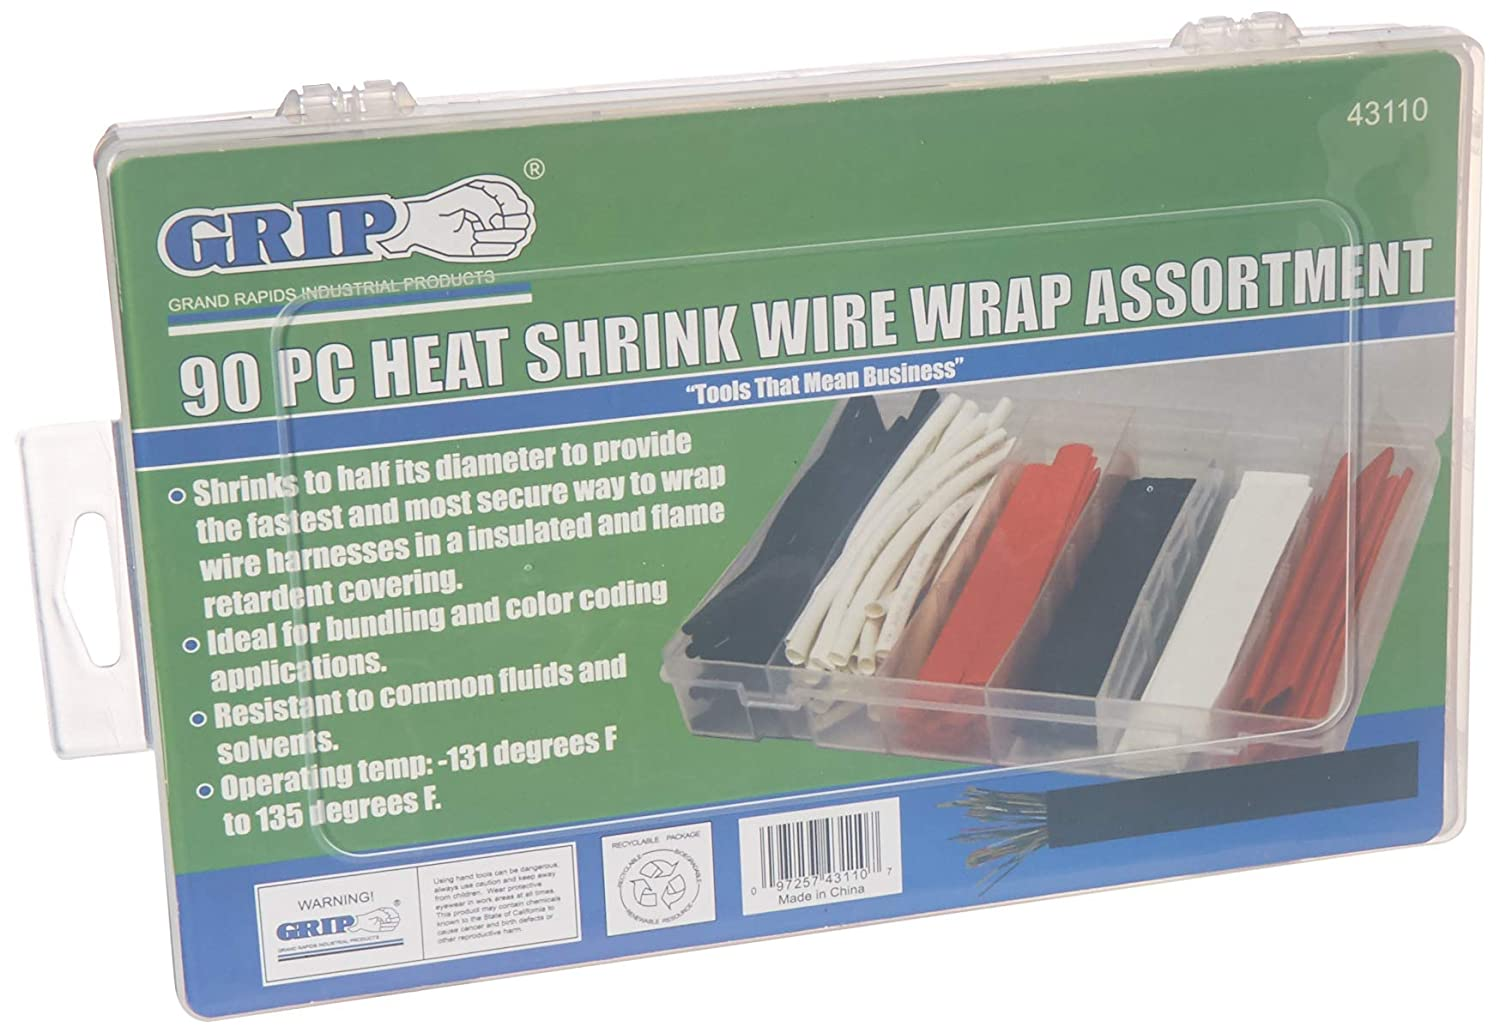 Gslf 4 Pin Wiring Harness Schematic Diagrams Wire Amazon Com Grip 90 Piece Heat Shrink Wrap Assortment Home